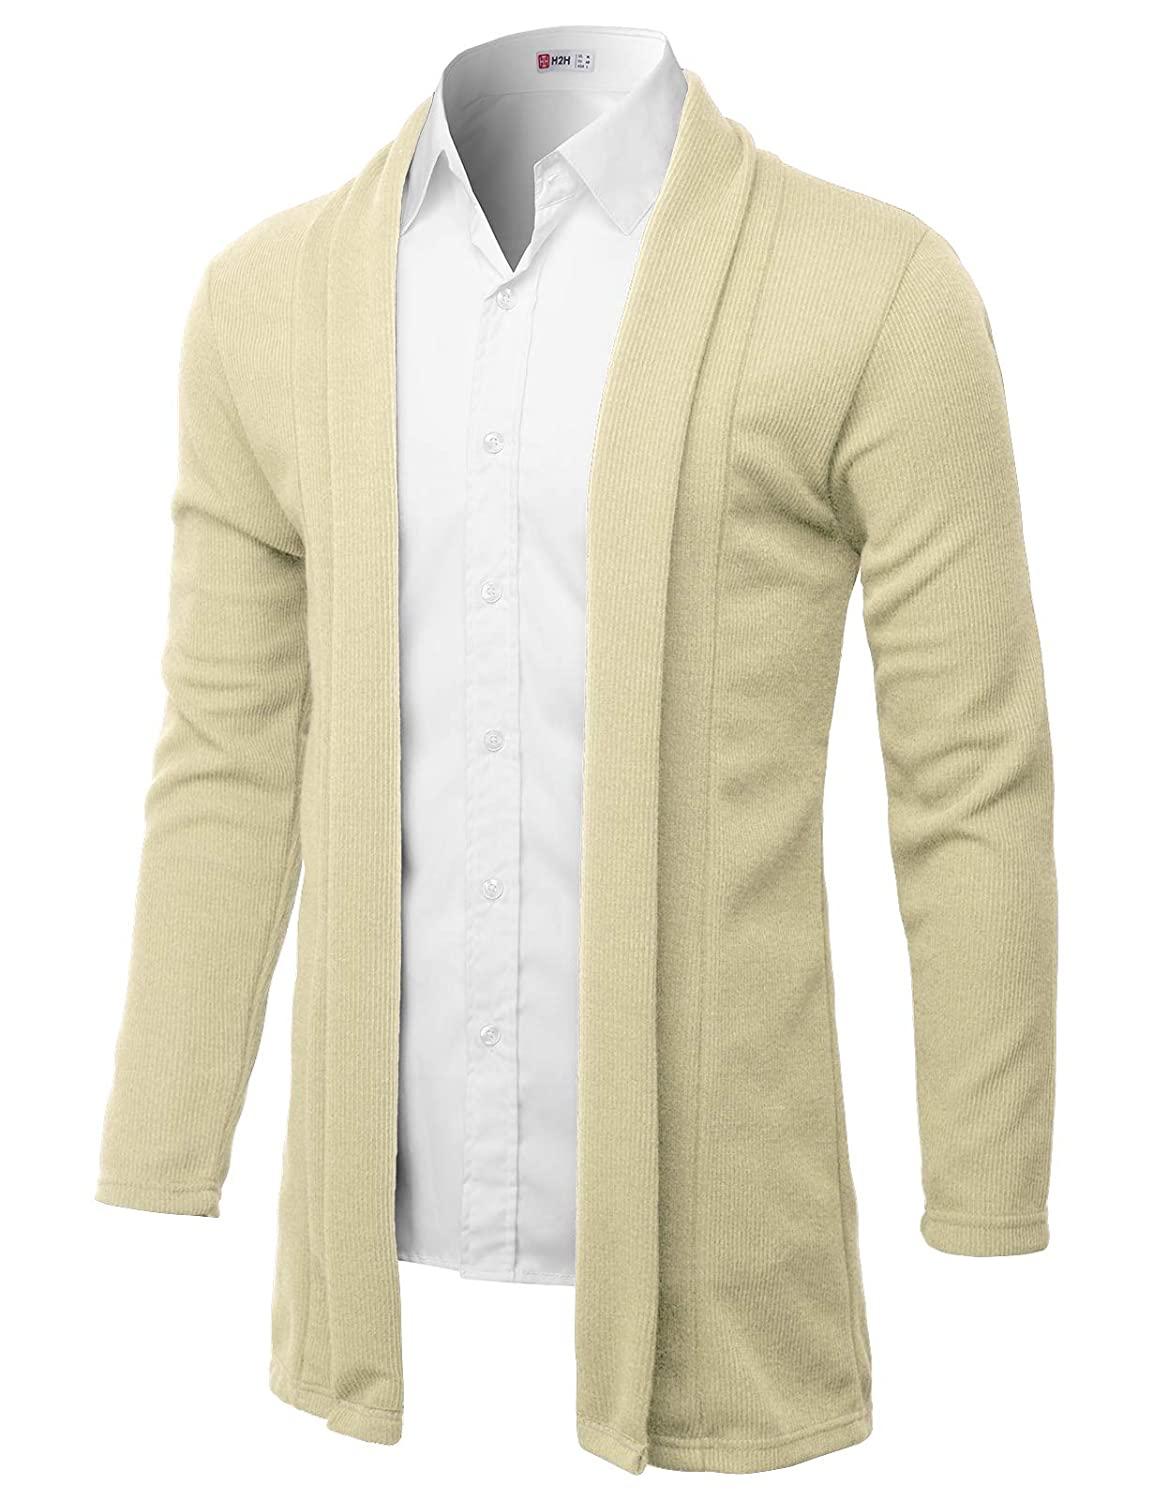 H2H Mens Fashion Slim Fit Open Front Long Sleeve Shawl Collar Pullover Cardigan #KMOCAL012